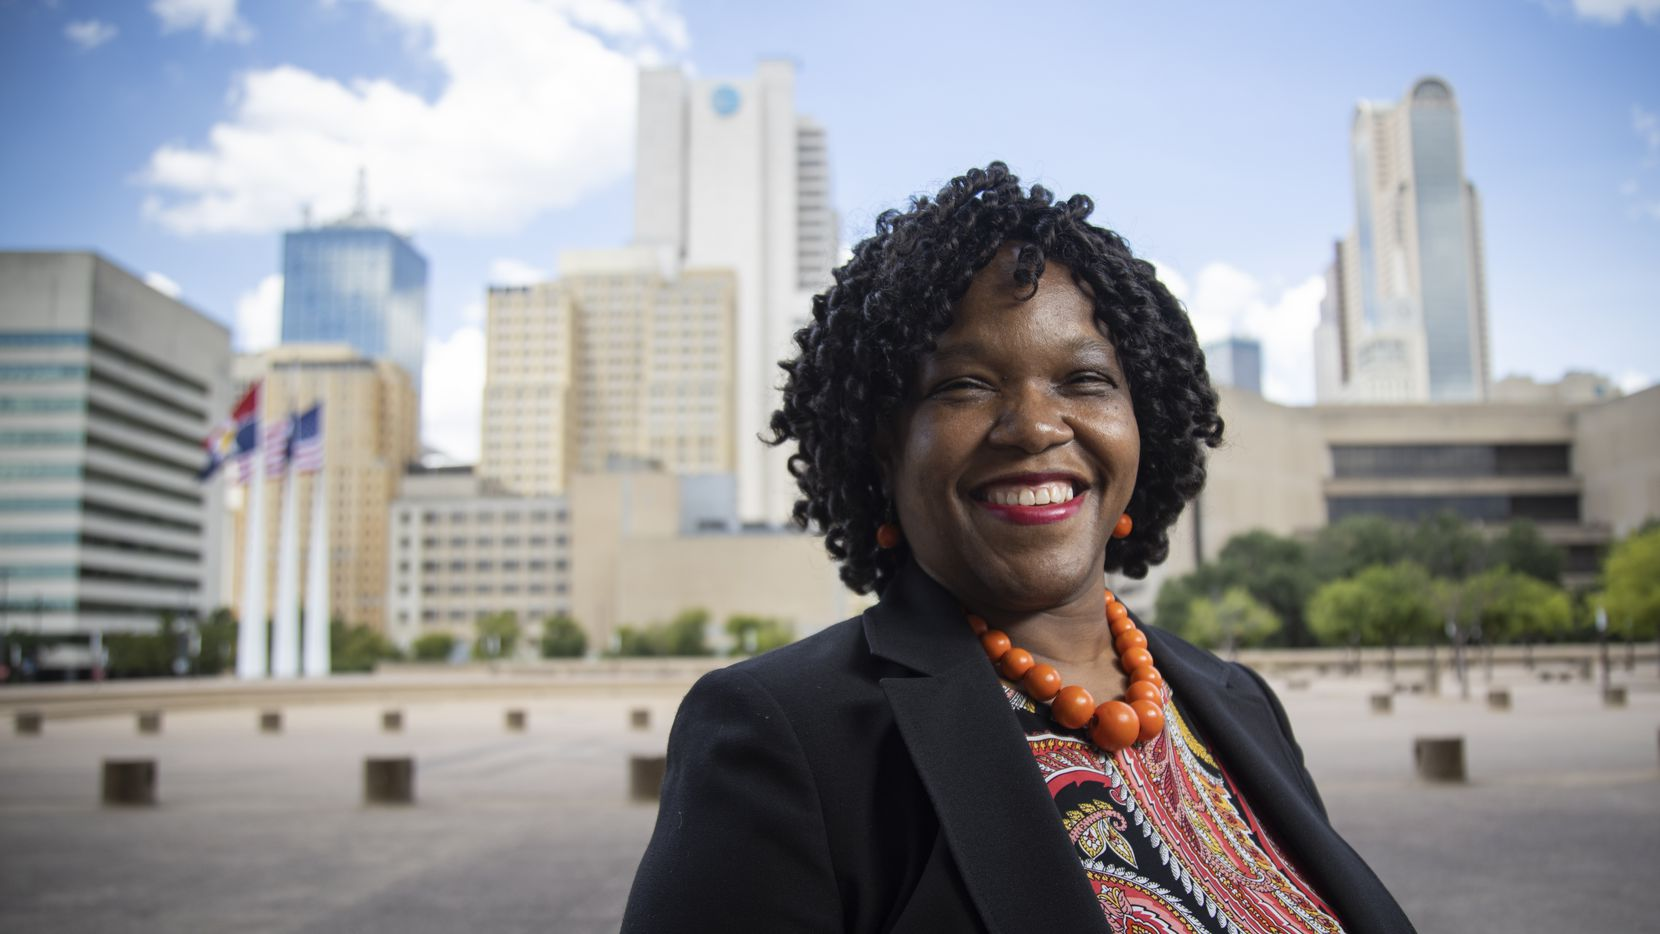 Tonya McClary, Dallas' Police Oversight Monitor, poses for a photo outside of City Hall on July 24, 2020 at City Hall in Dallas. (Juan Figueroa/ The Dallas Morning News)